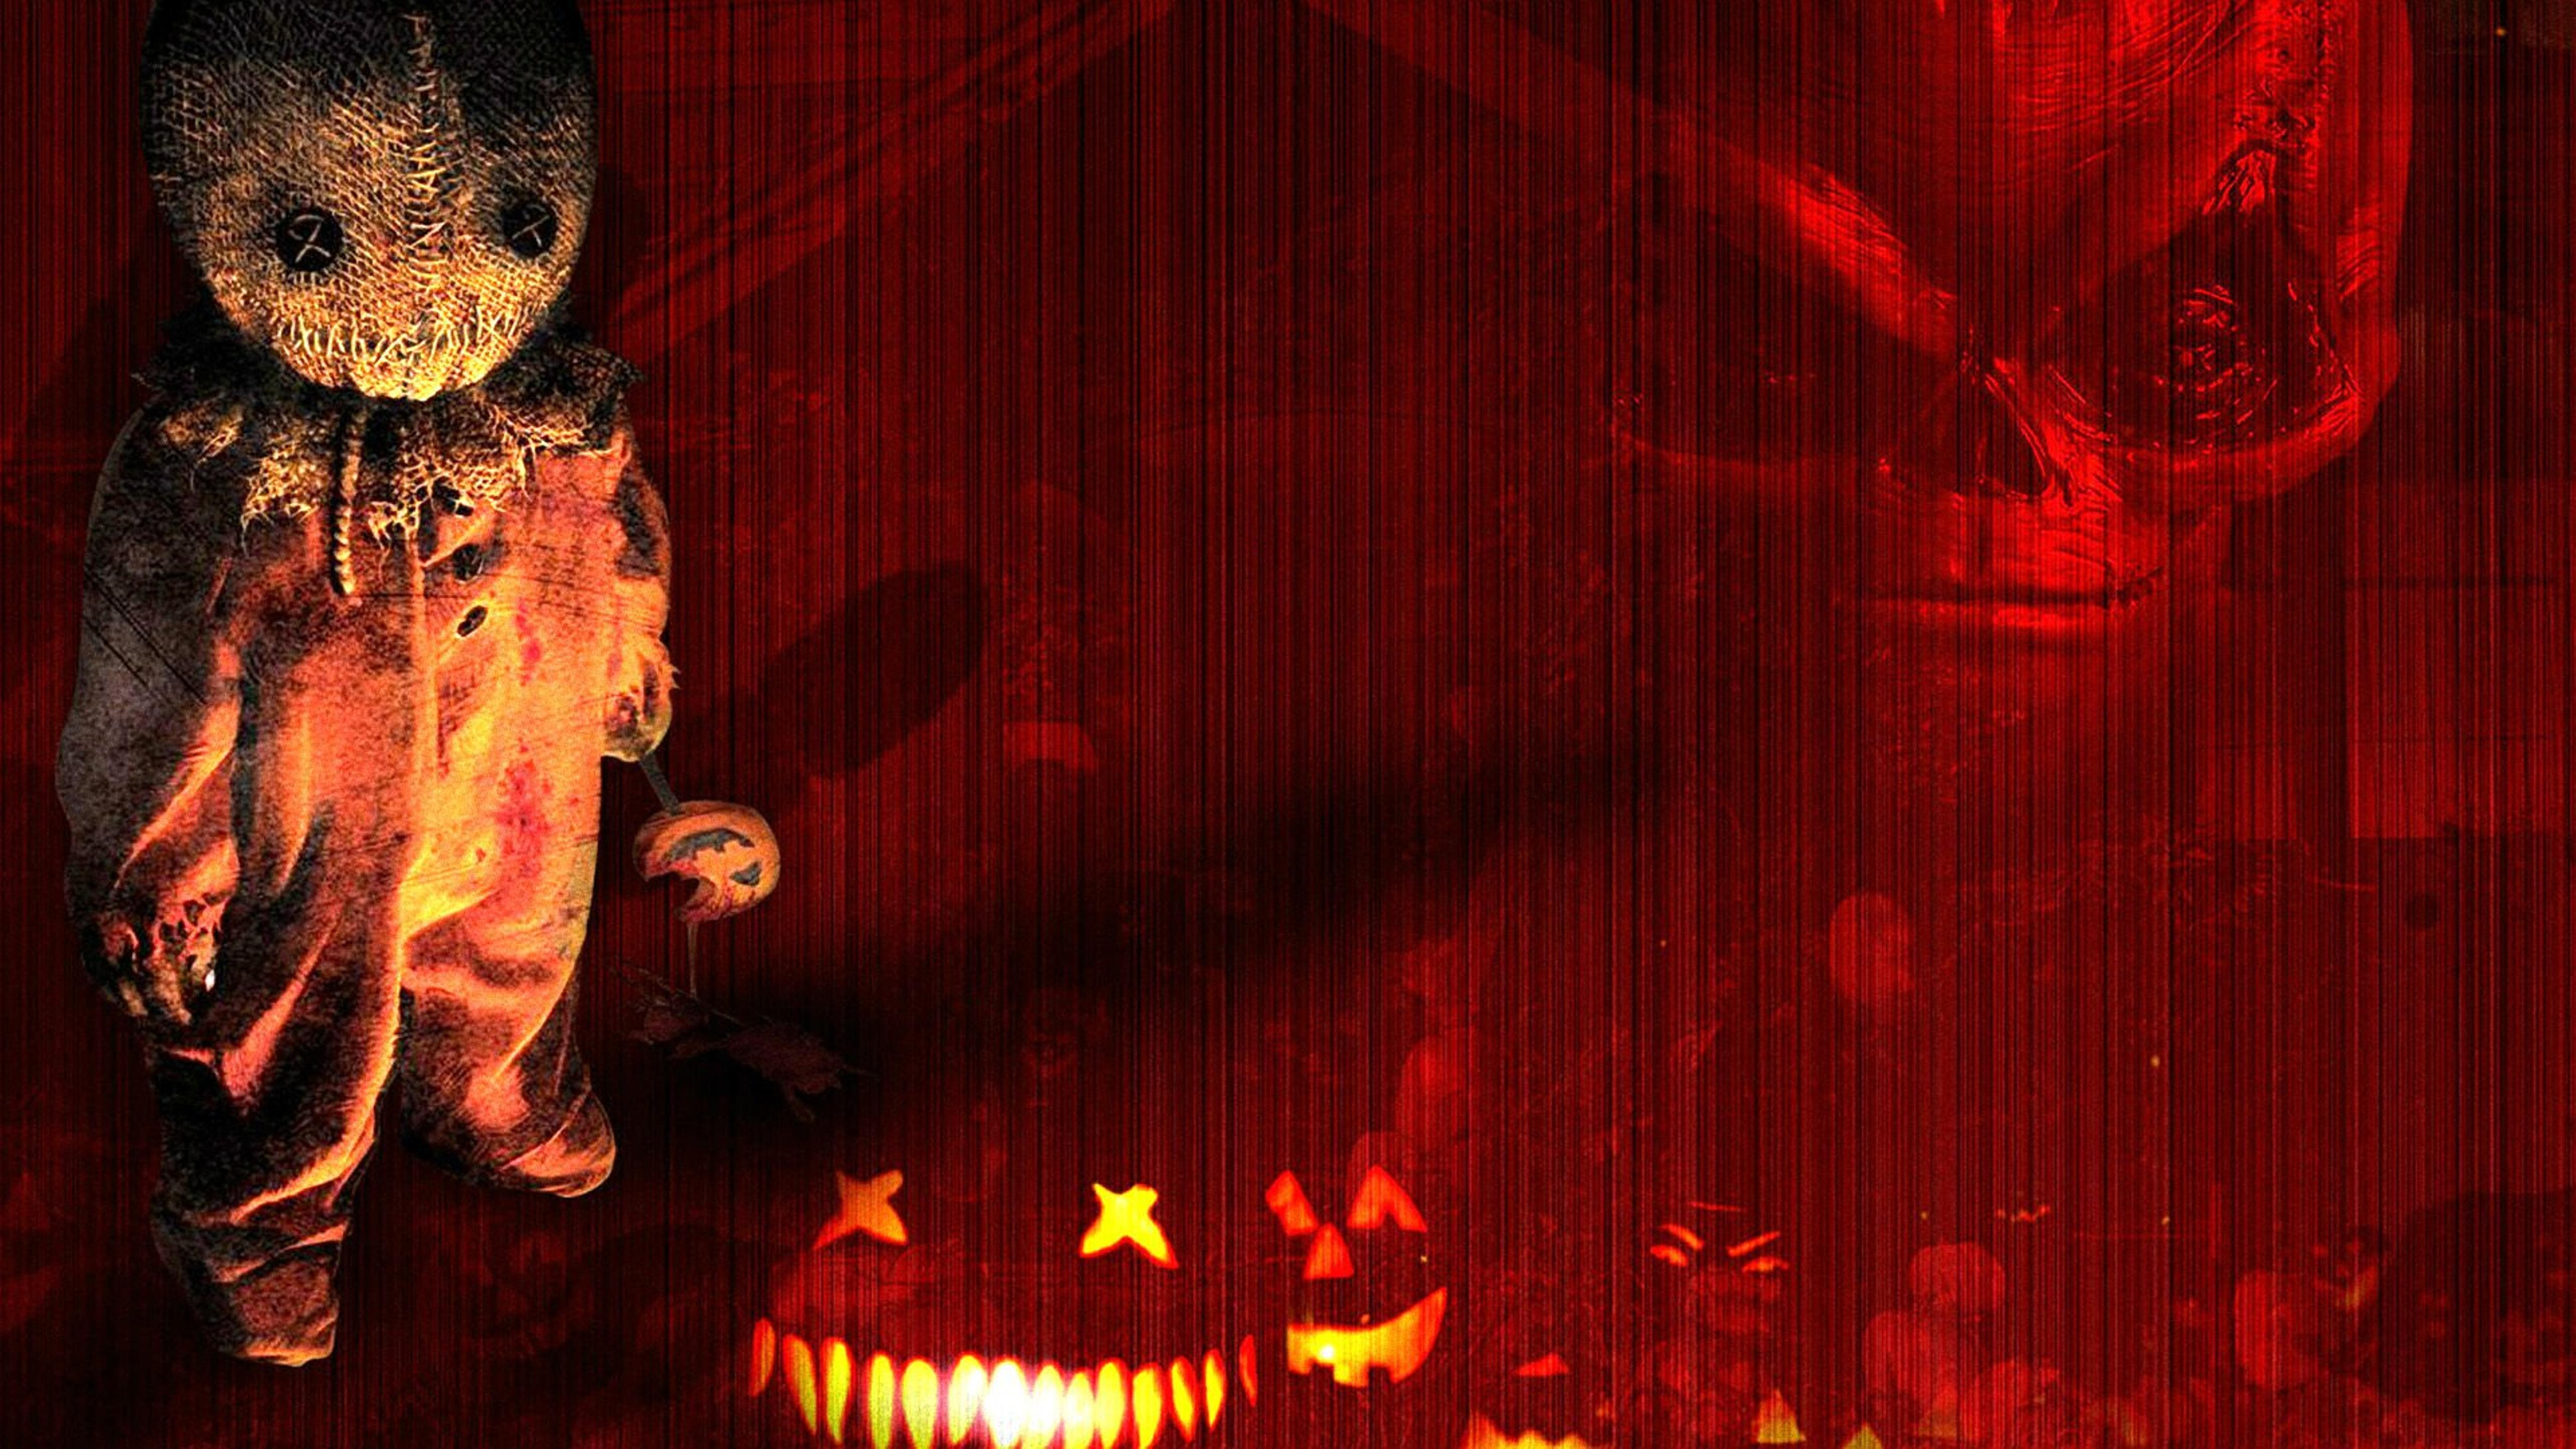 Download Wallpaper Night Ghost - ghost-and-pumpkins-halloween-night-5120x2880  Perfect Image Reference-72113.jpg